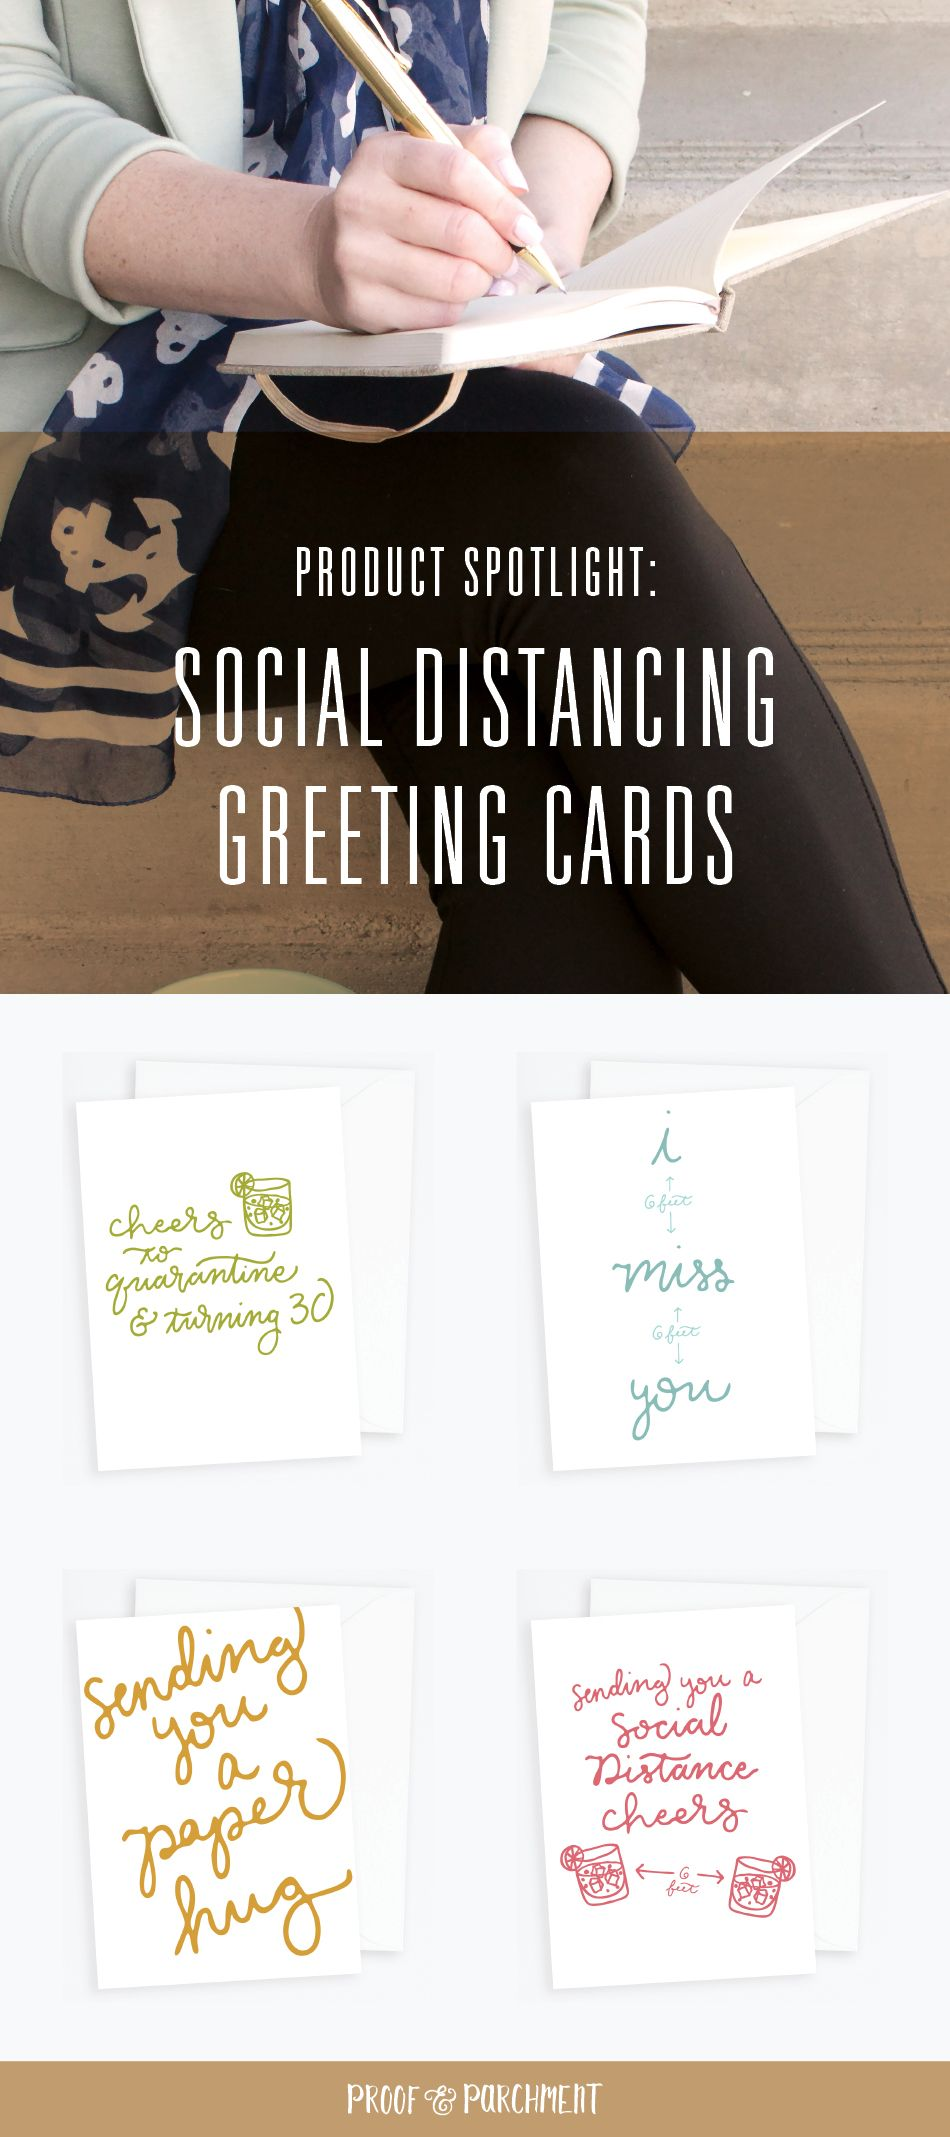 Product Spotlight Social Distancing Cards Proof